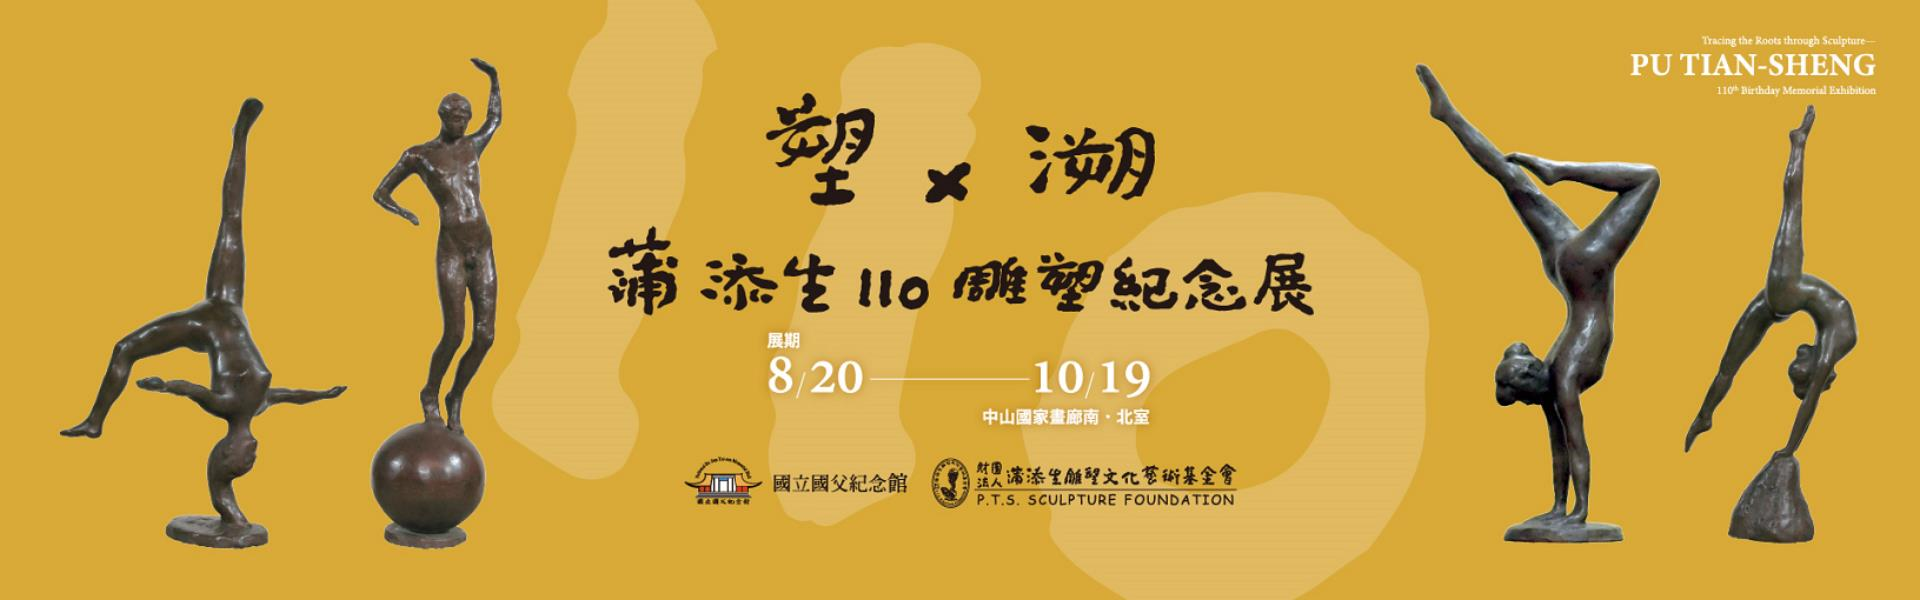 Tracing the Roots through Sculpture—PU TIAN-SHENG 110th Birthday Memorial Exhibition「open a new window」